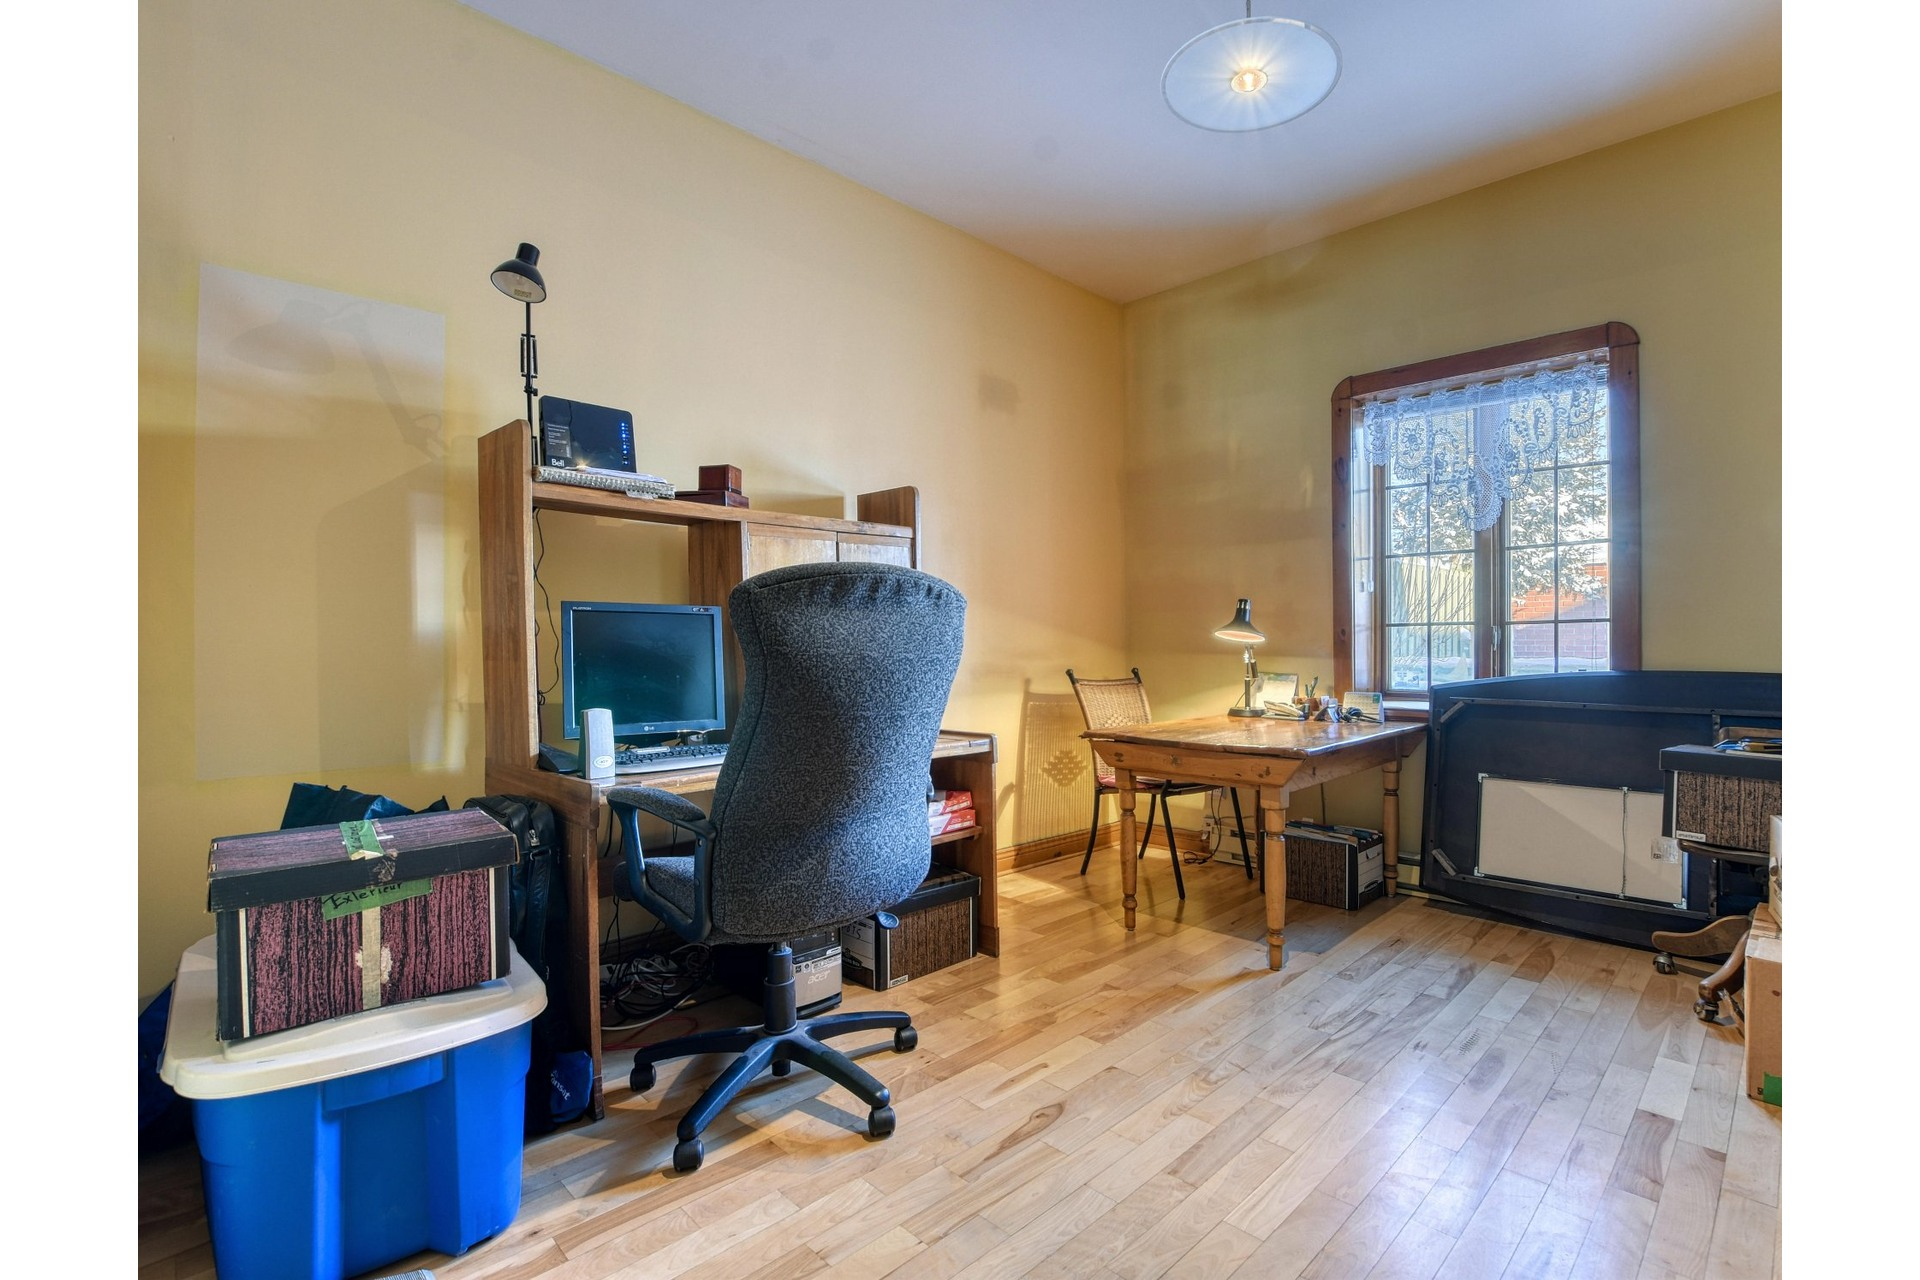 image 11 - House For sale Saint-Laurent Montréal  - 10 rooms